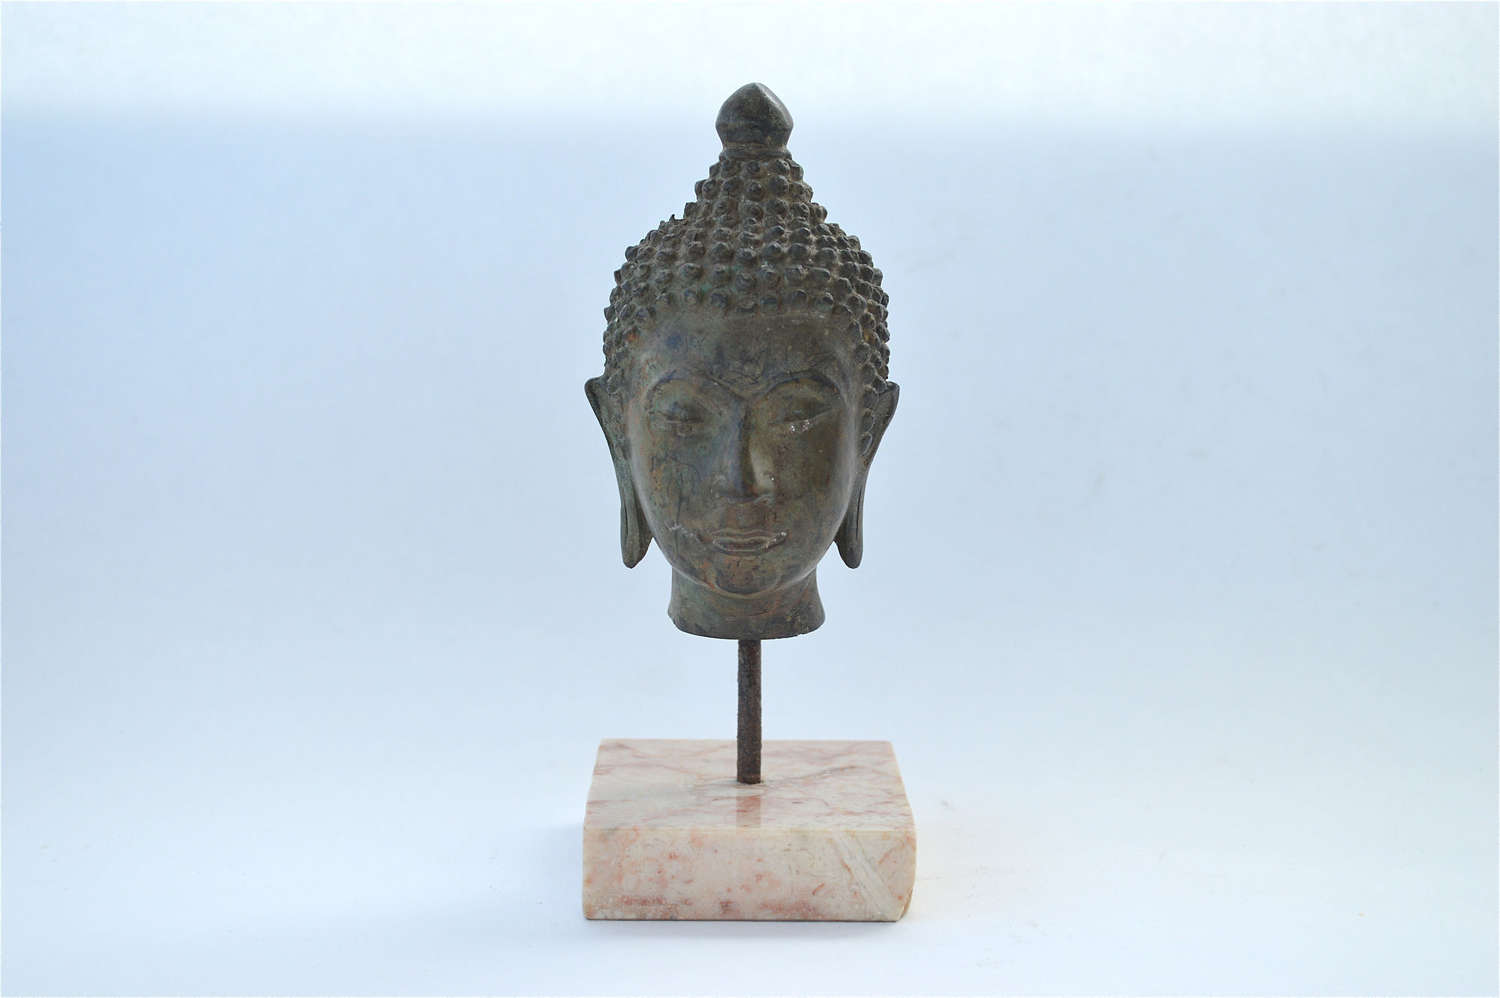 Bronze sculpture of the head of Buddha